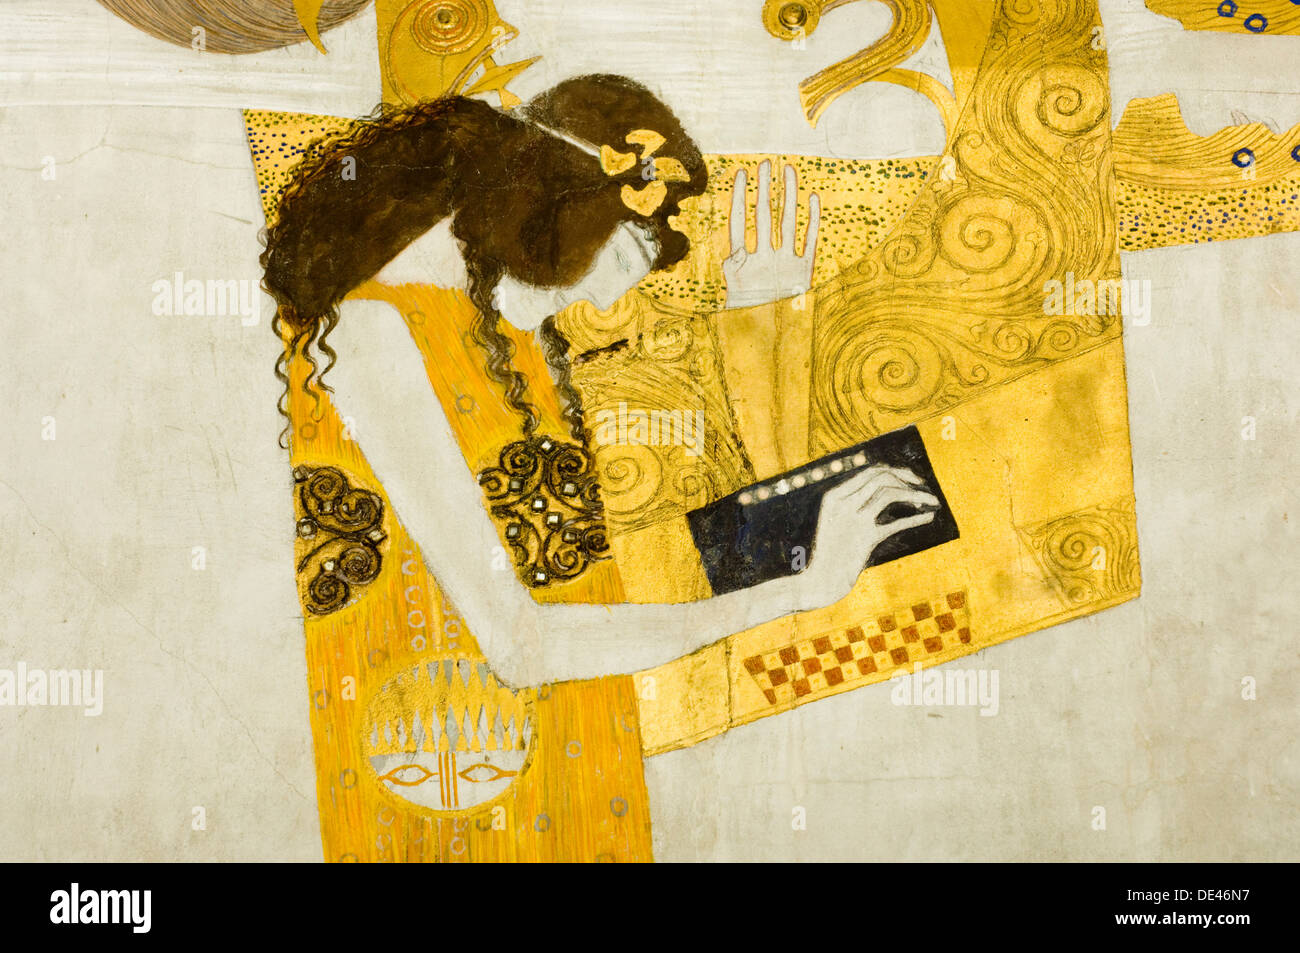 Österreich, Wien 4, Secession, Beethovenfries, Gustav Klimts Beethovenfries - Stock Image